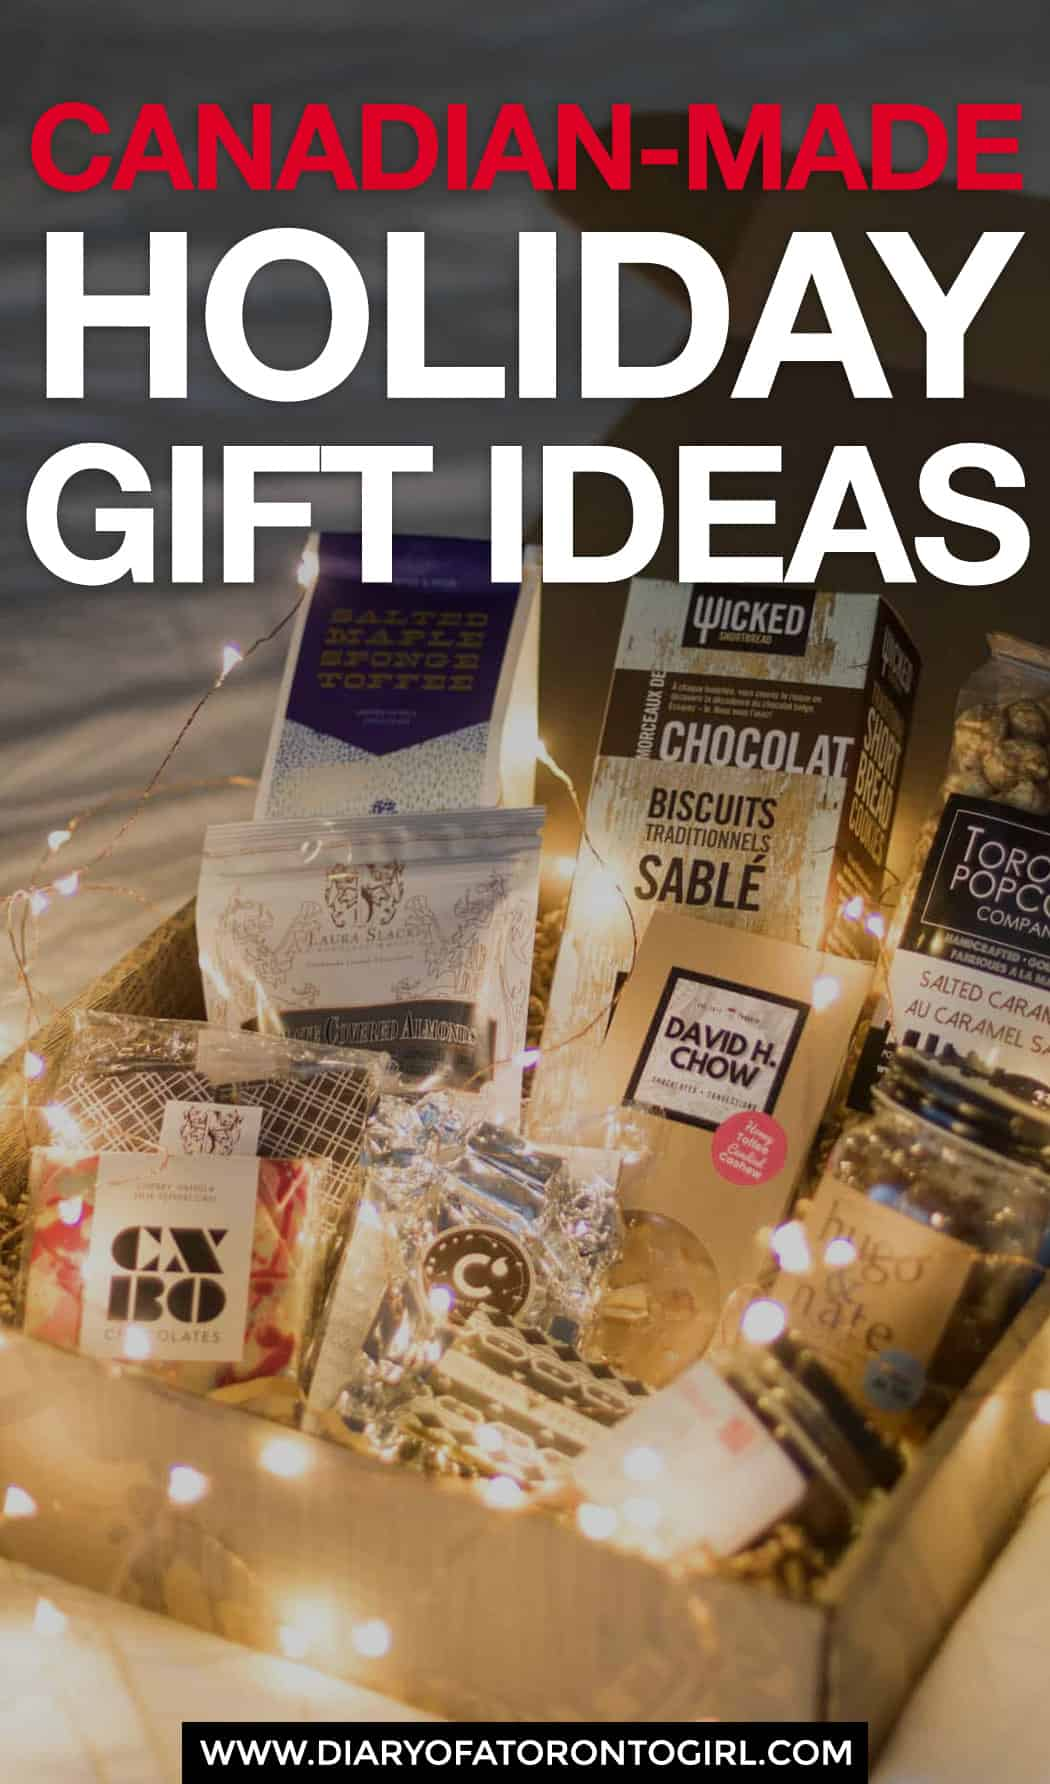 Canadian-made holiday gift ideas to shop for your friends and loved ones, so you can feel good supporting local while shopping for gifts!